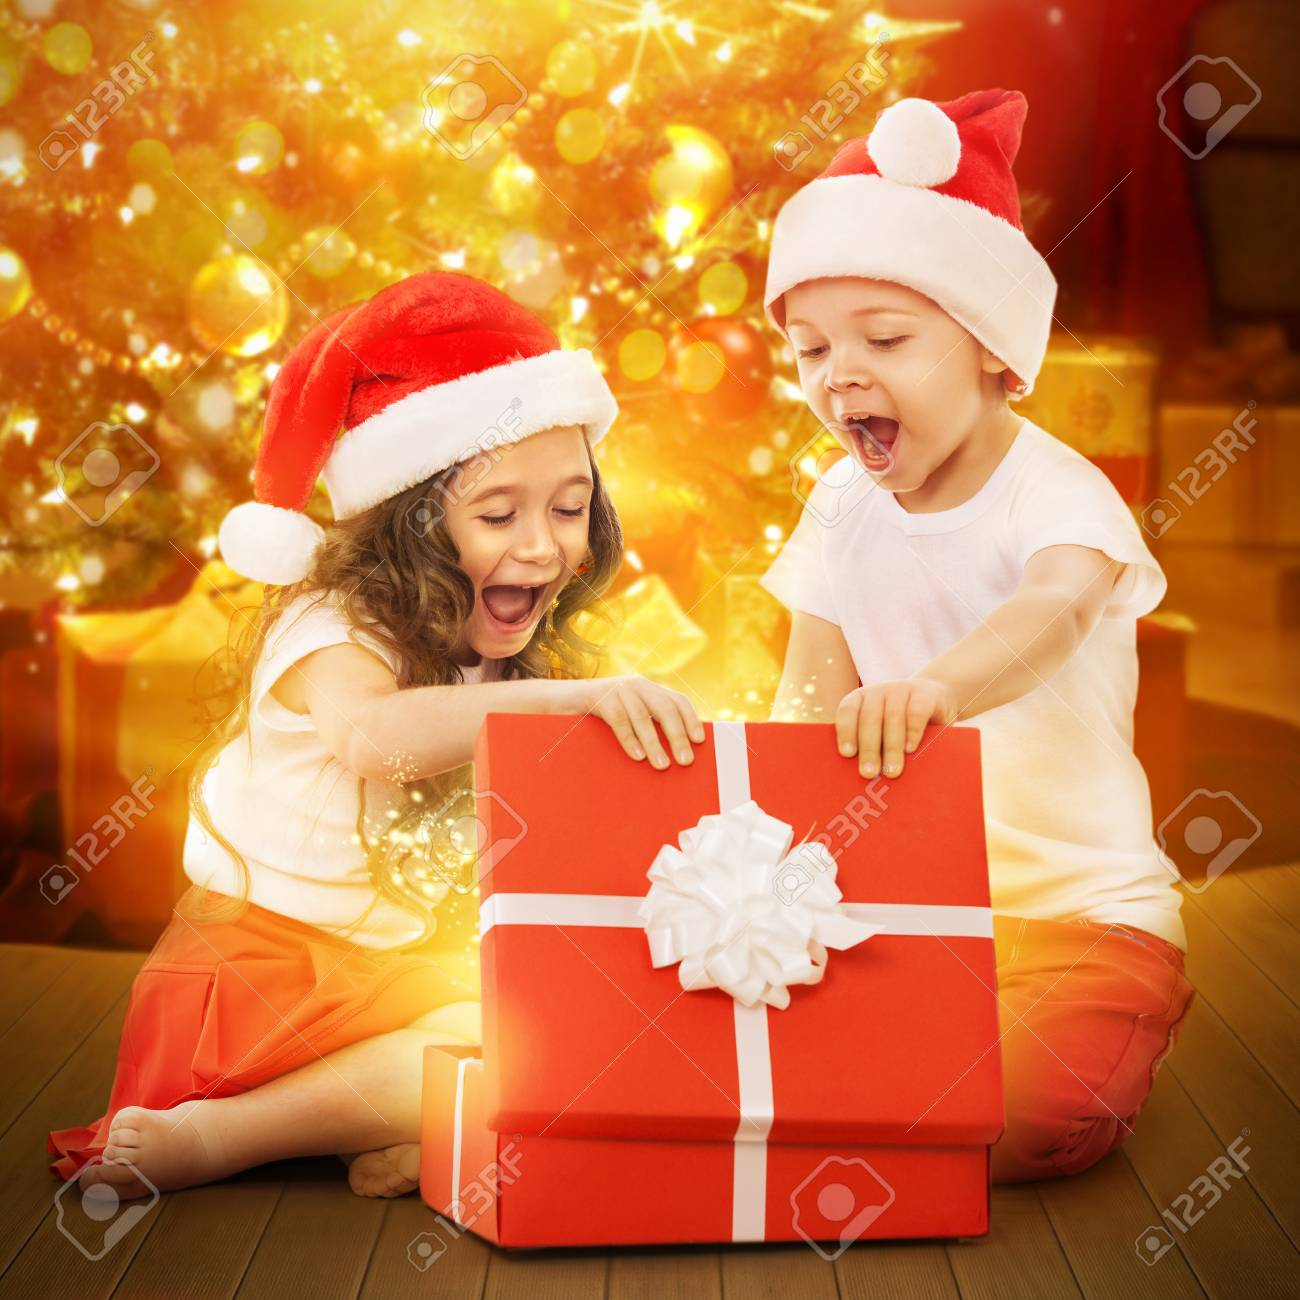 Colorful Christmas Background For Kids.Happy Kids In Santa Hat Opening A Gift Box With Colorful Lights